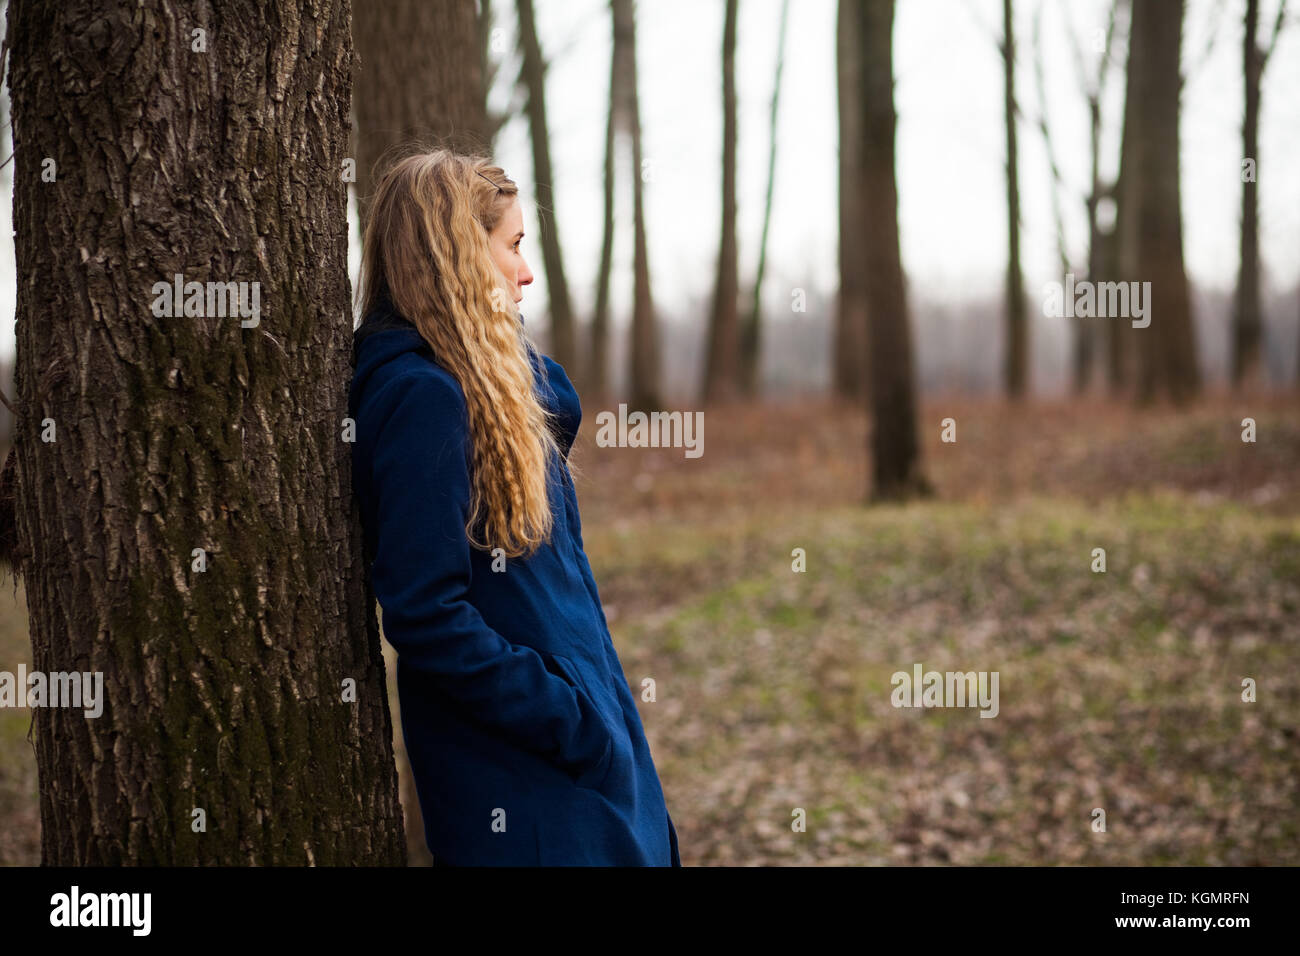 Lonely woman standing in forest in winter - Stock Image